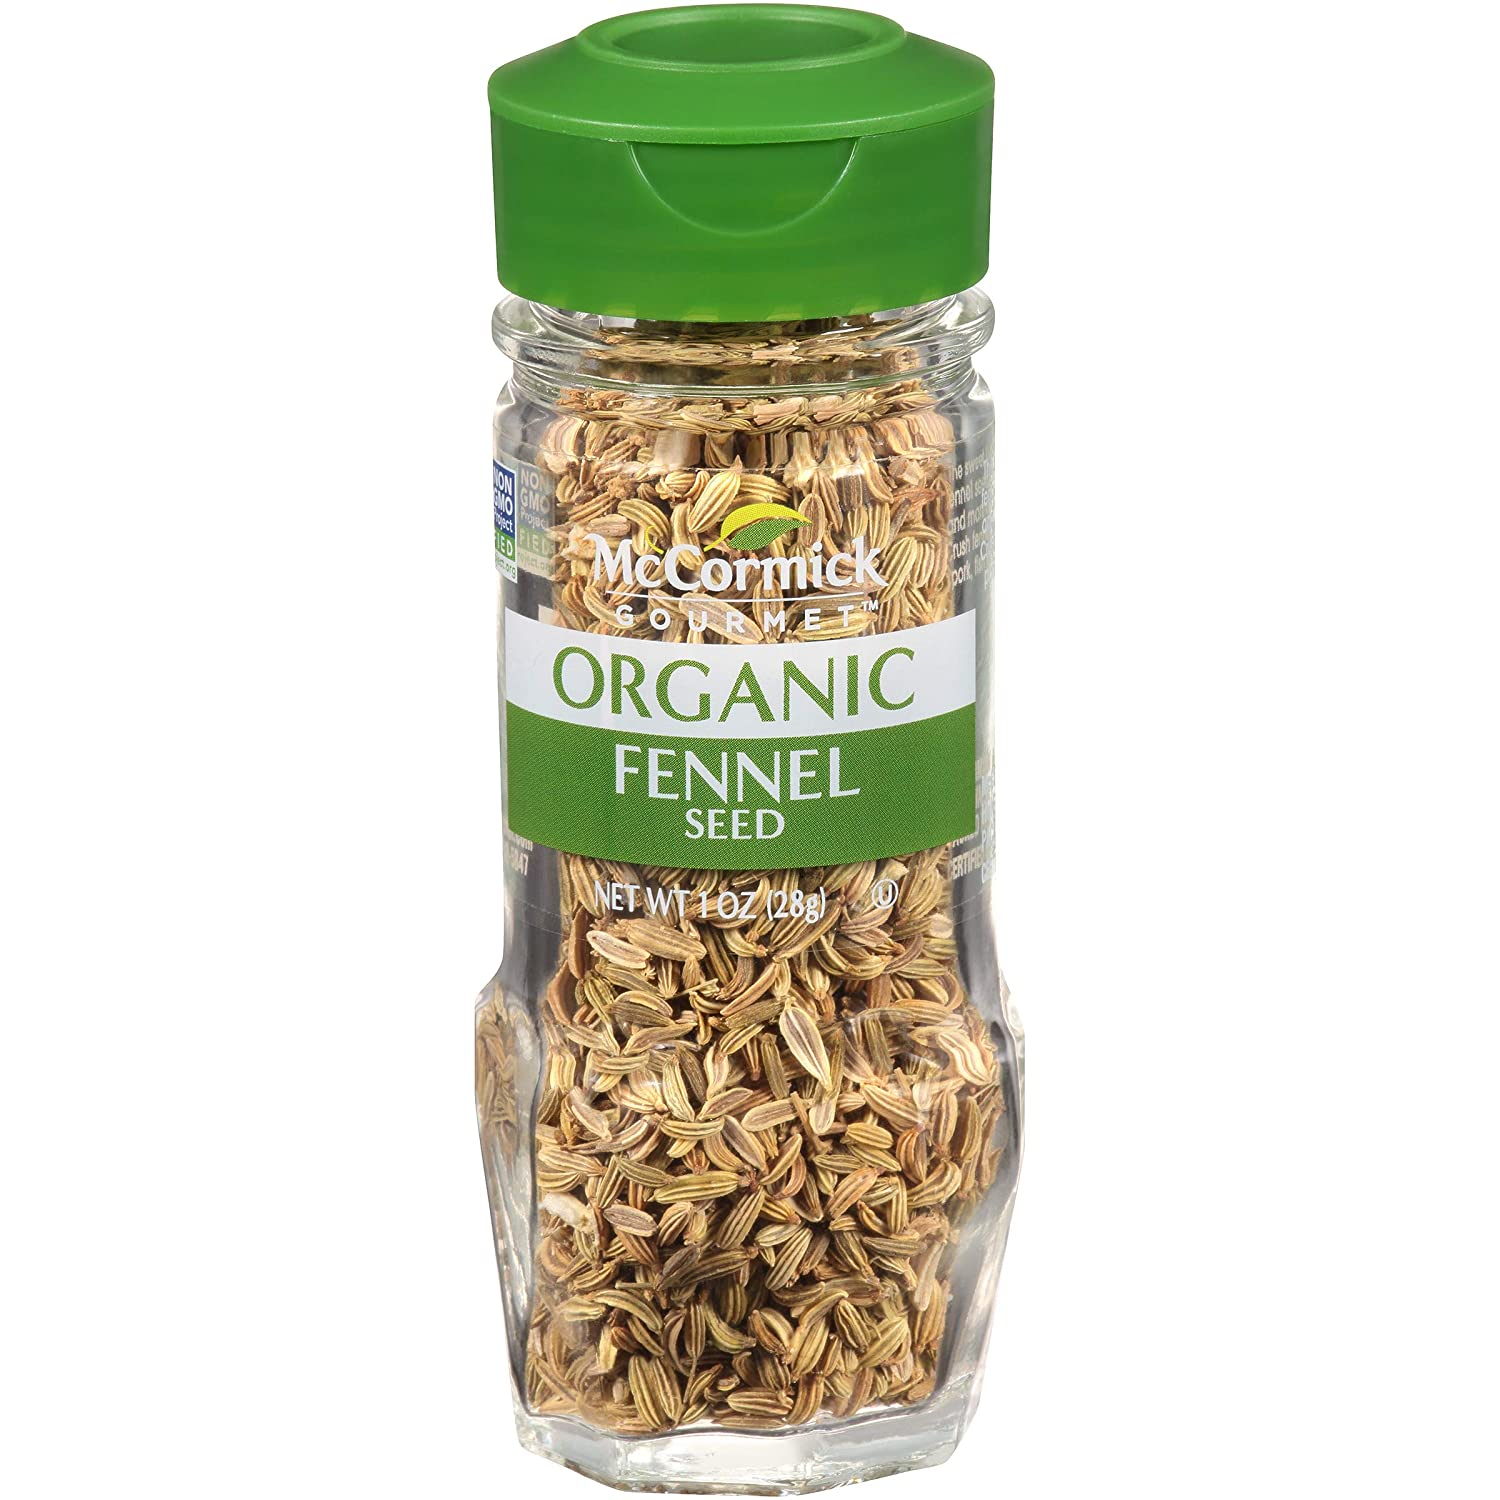 McCormick Gourmet Organic Fennel 100% quality warranty oz Surprise price Seed 1